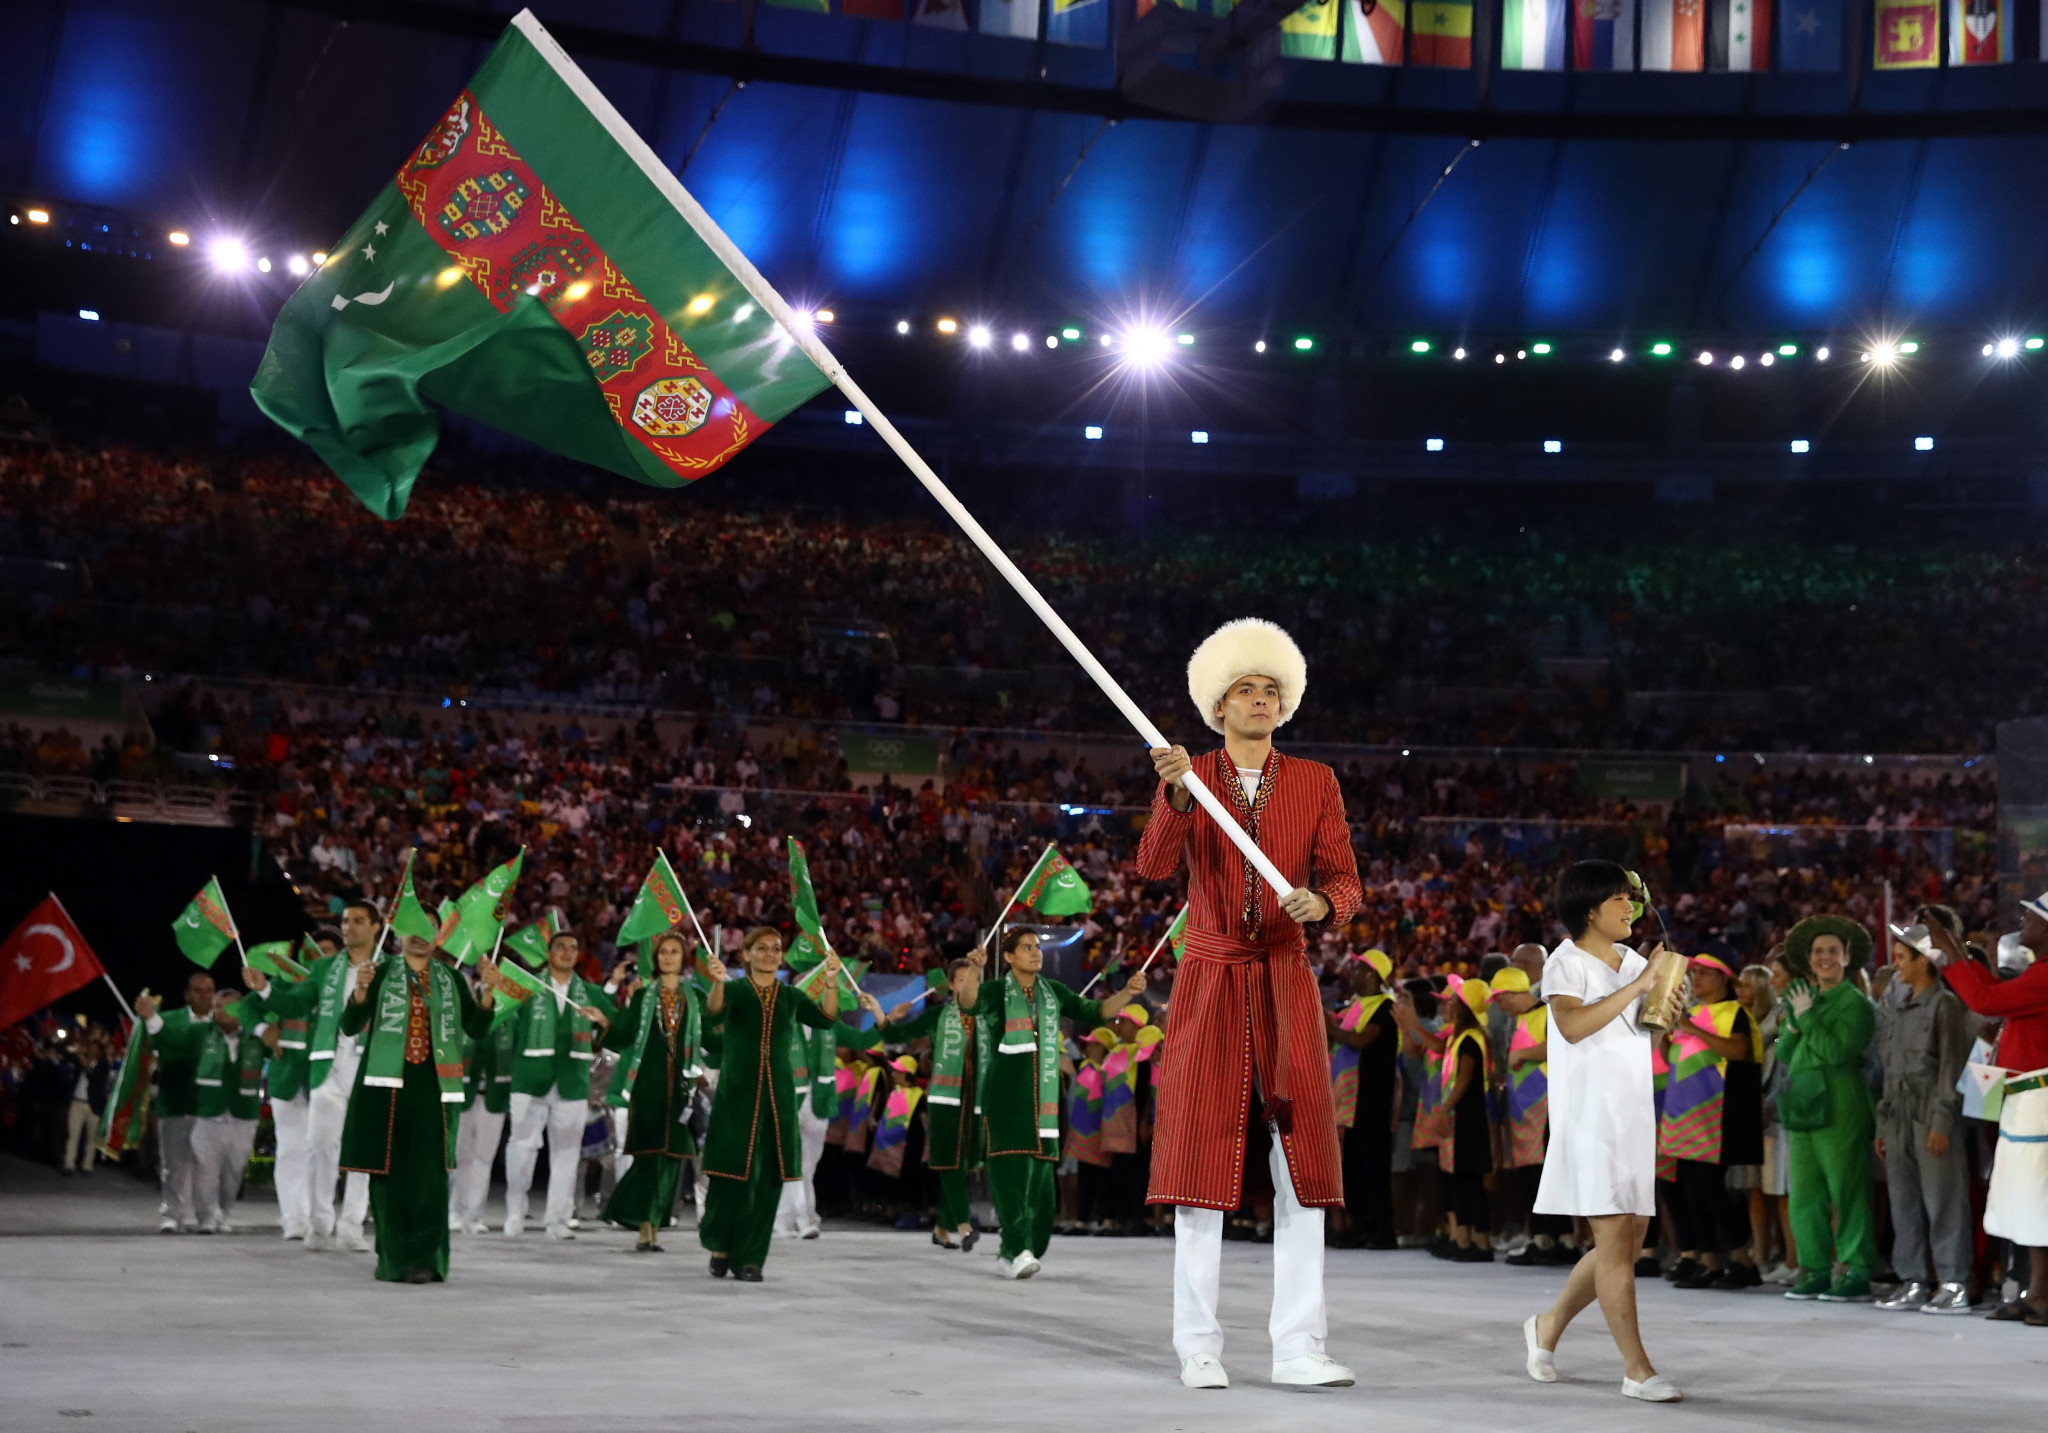 Turkmenistan is due to host the event in Ashgabat ©Getty Images